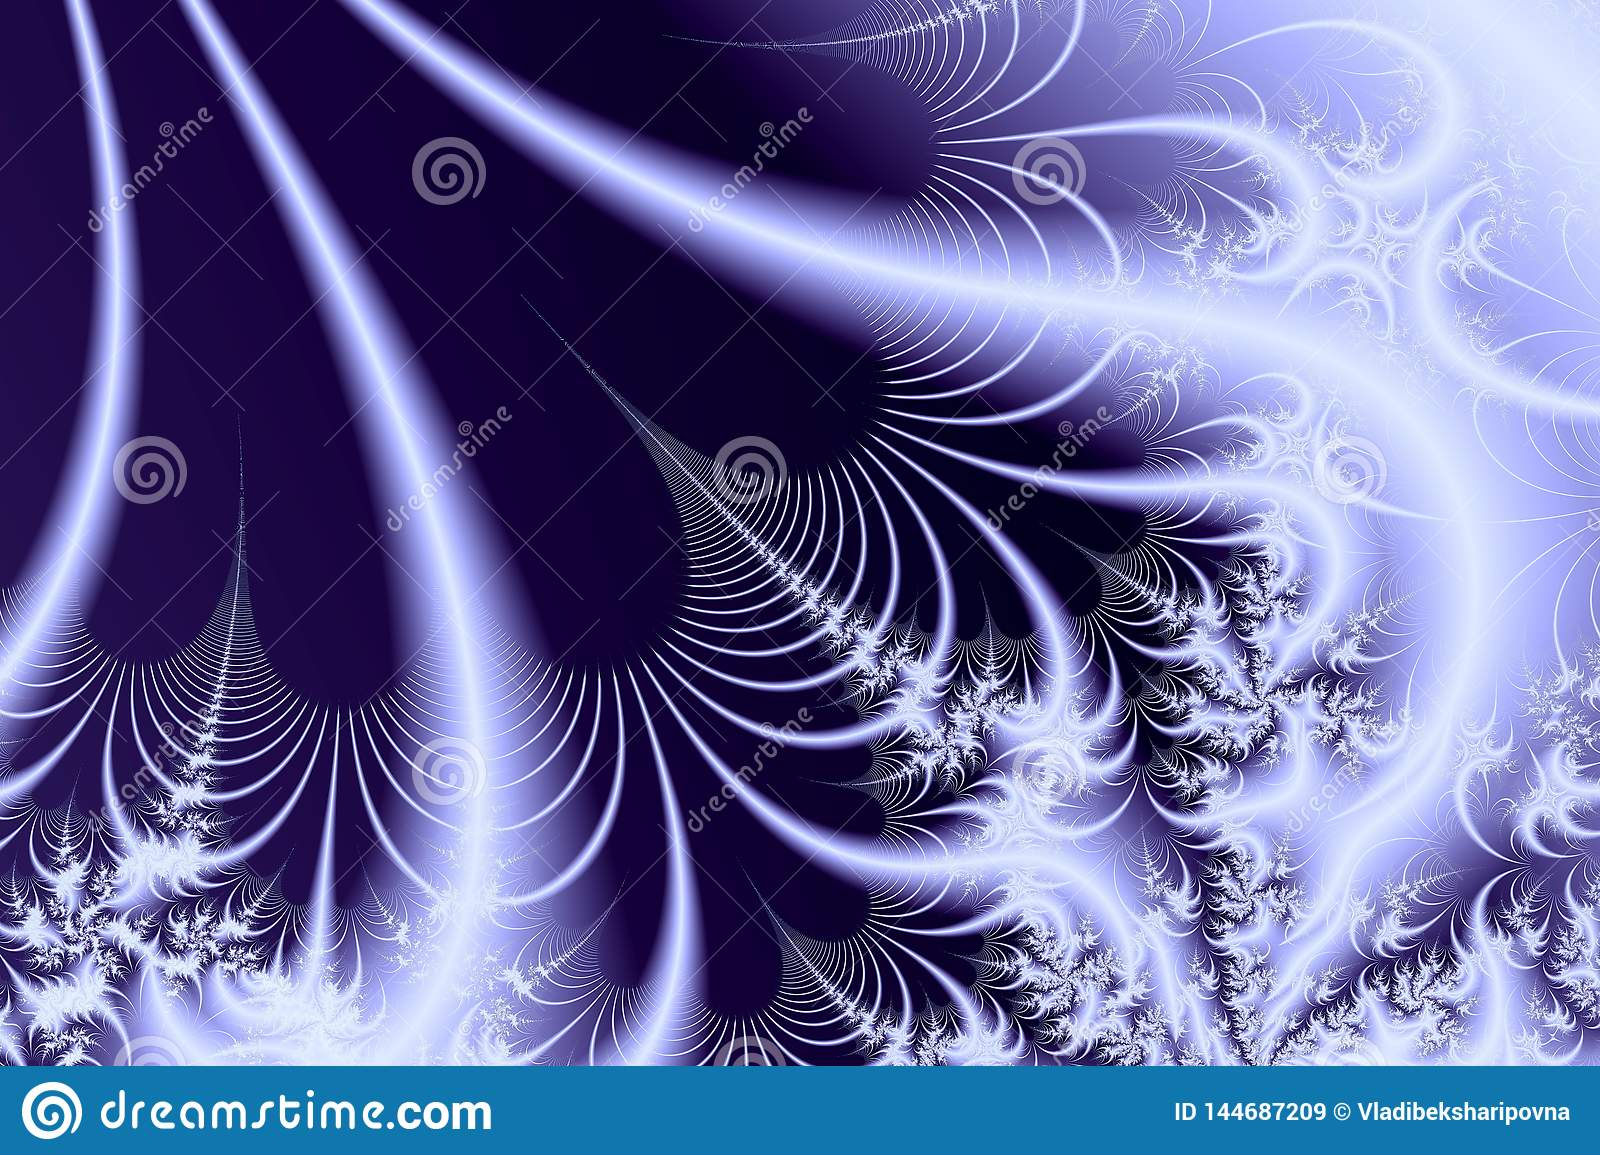 Blue background with white fractals and luminous lines